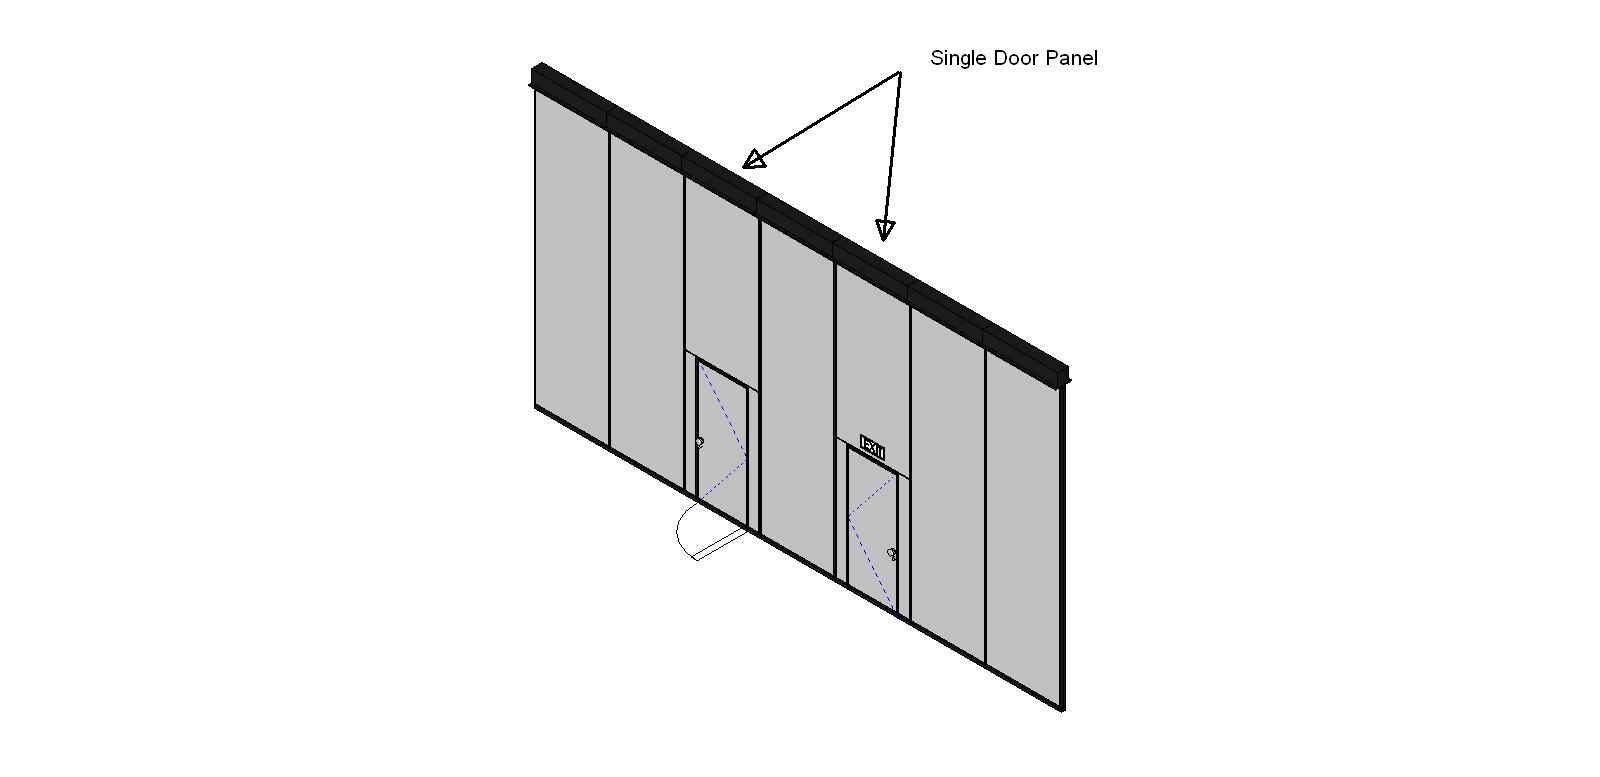 Wall Panels Operable Partition Gym Door Series Door Single  sc 1 st  Arcat & Moderco Inc. Operable Partitions BIM Objects / Families